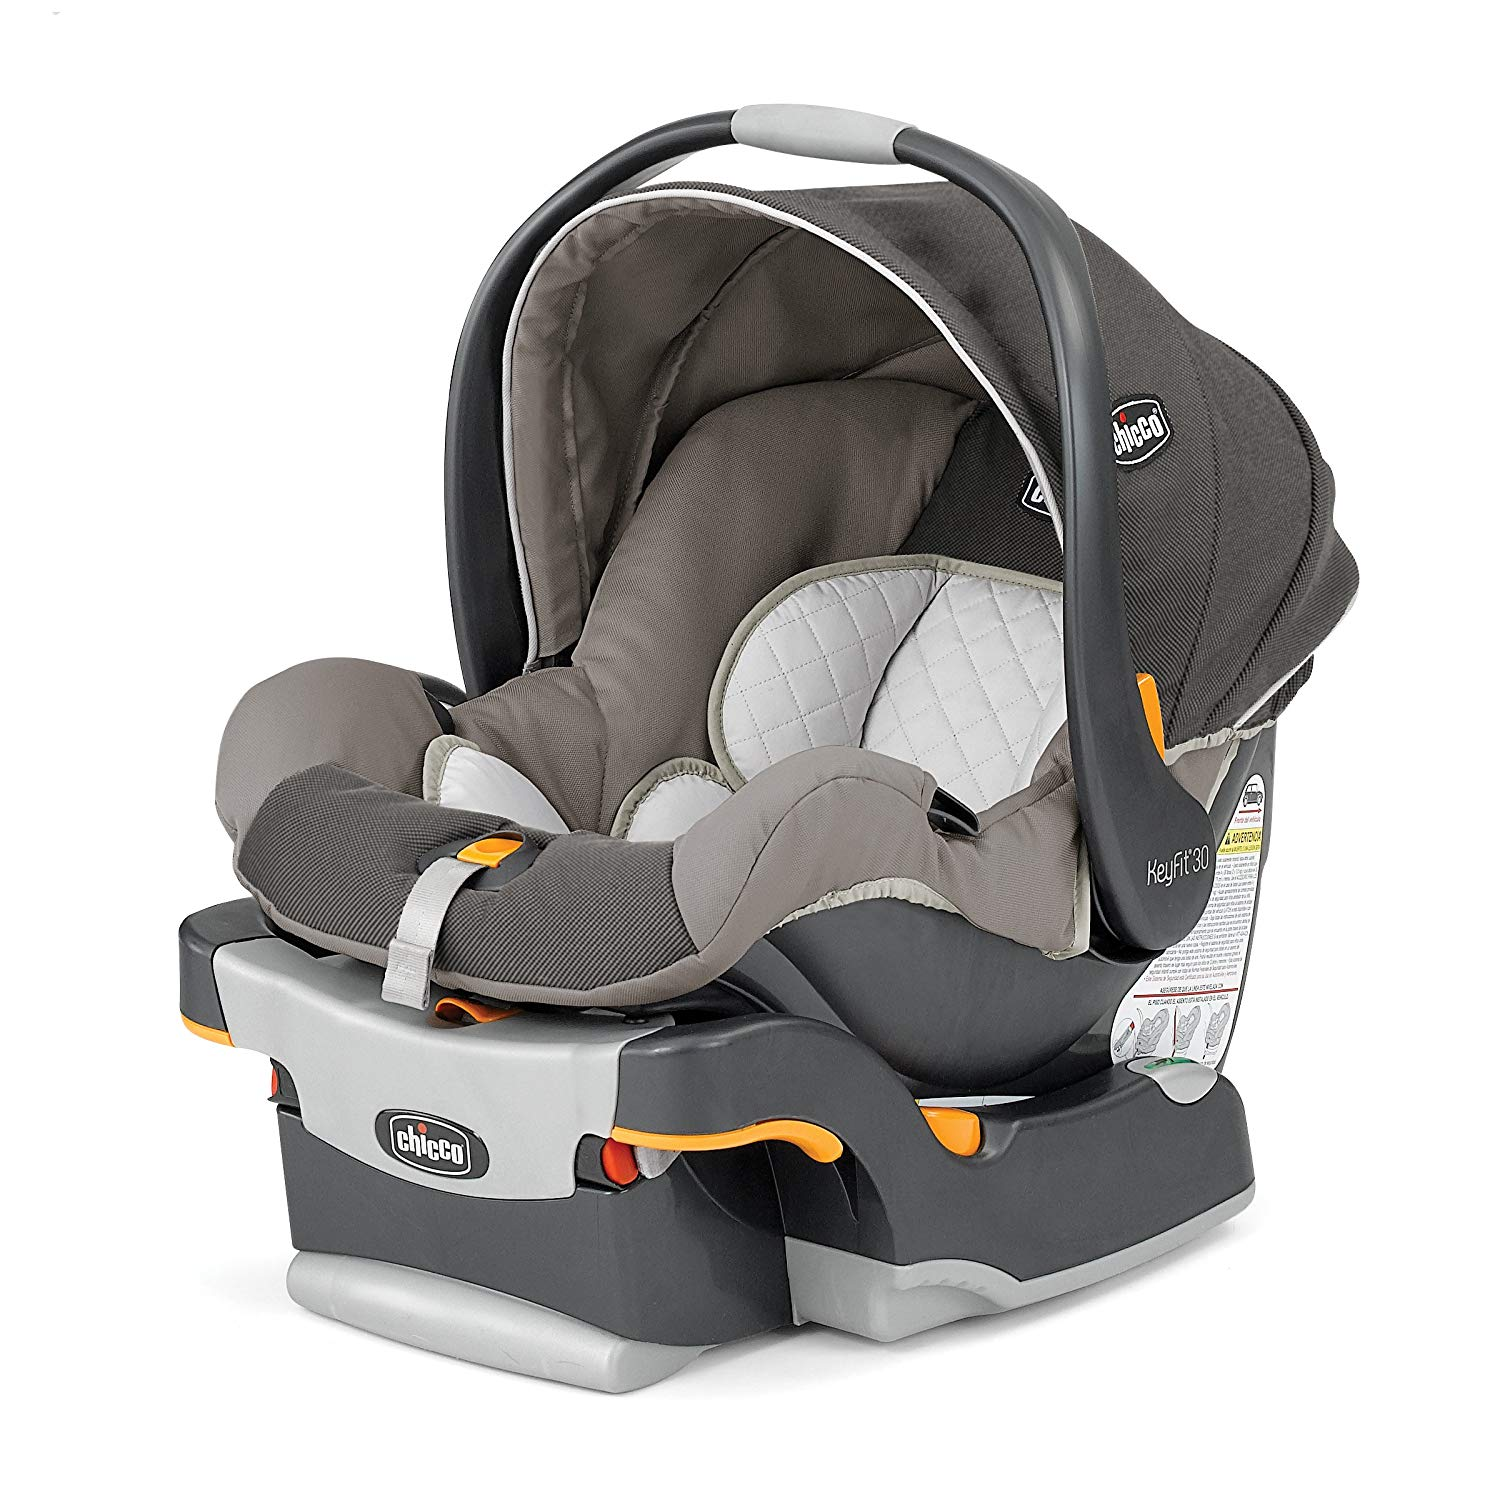 Best Car Seat: Chicco Key-30 Infant Car Seat